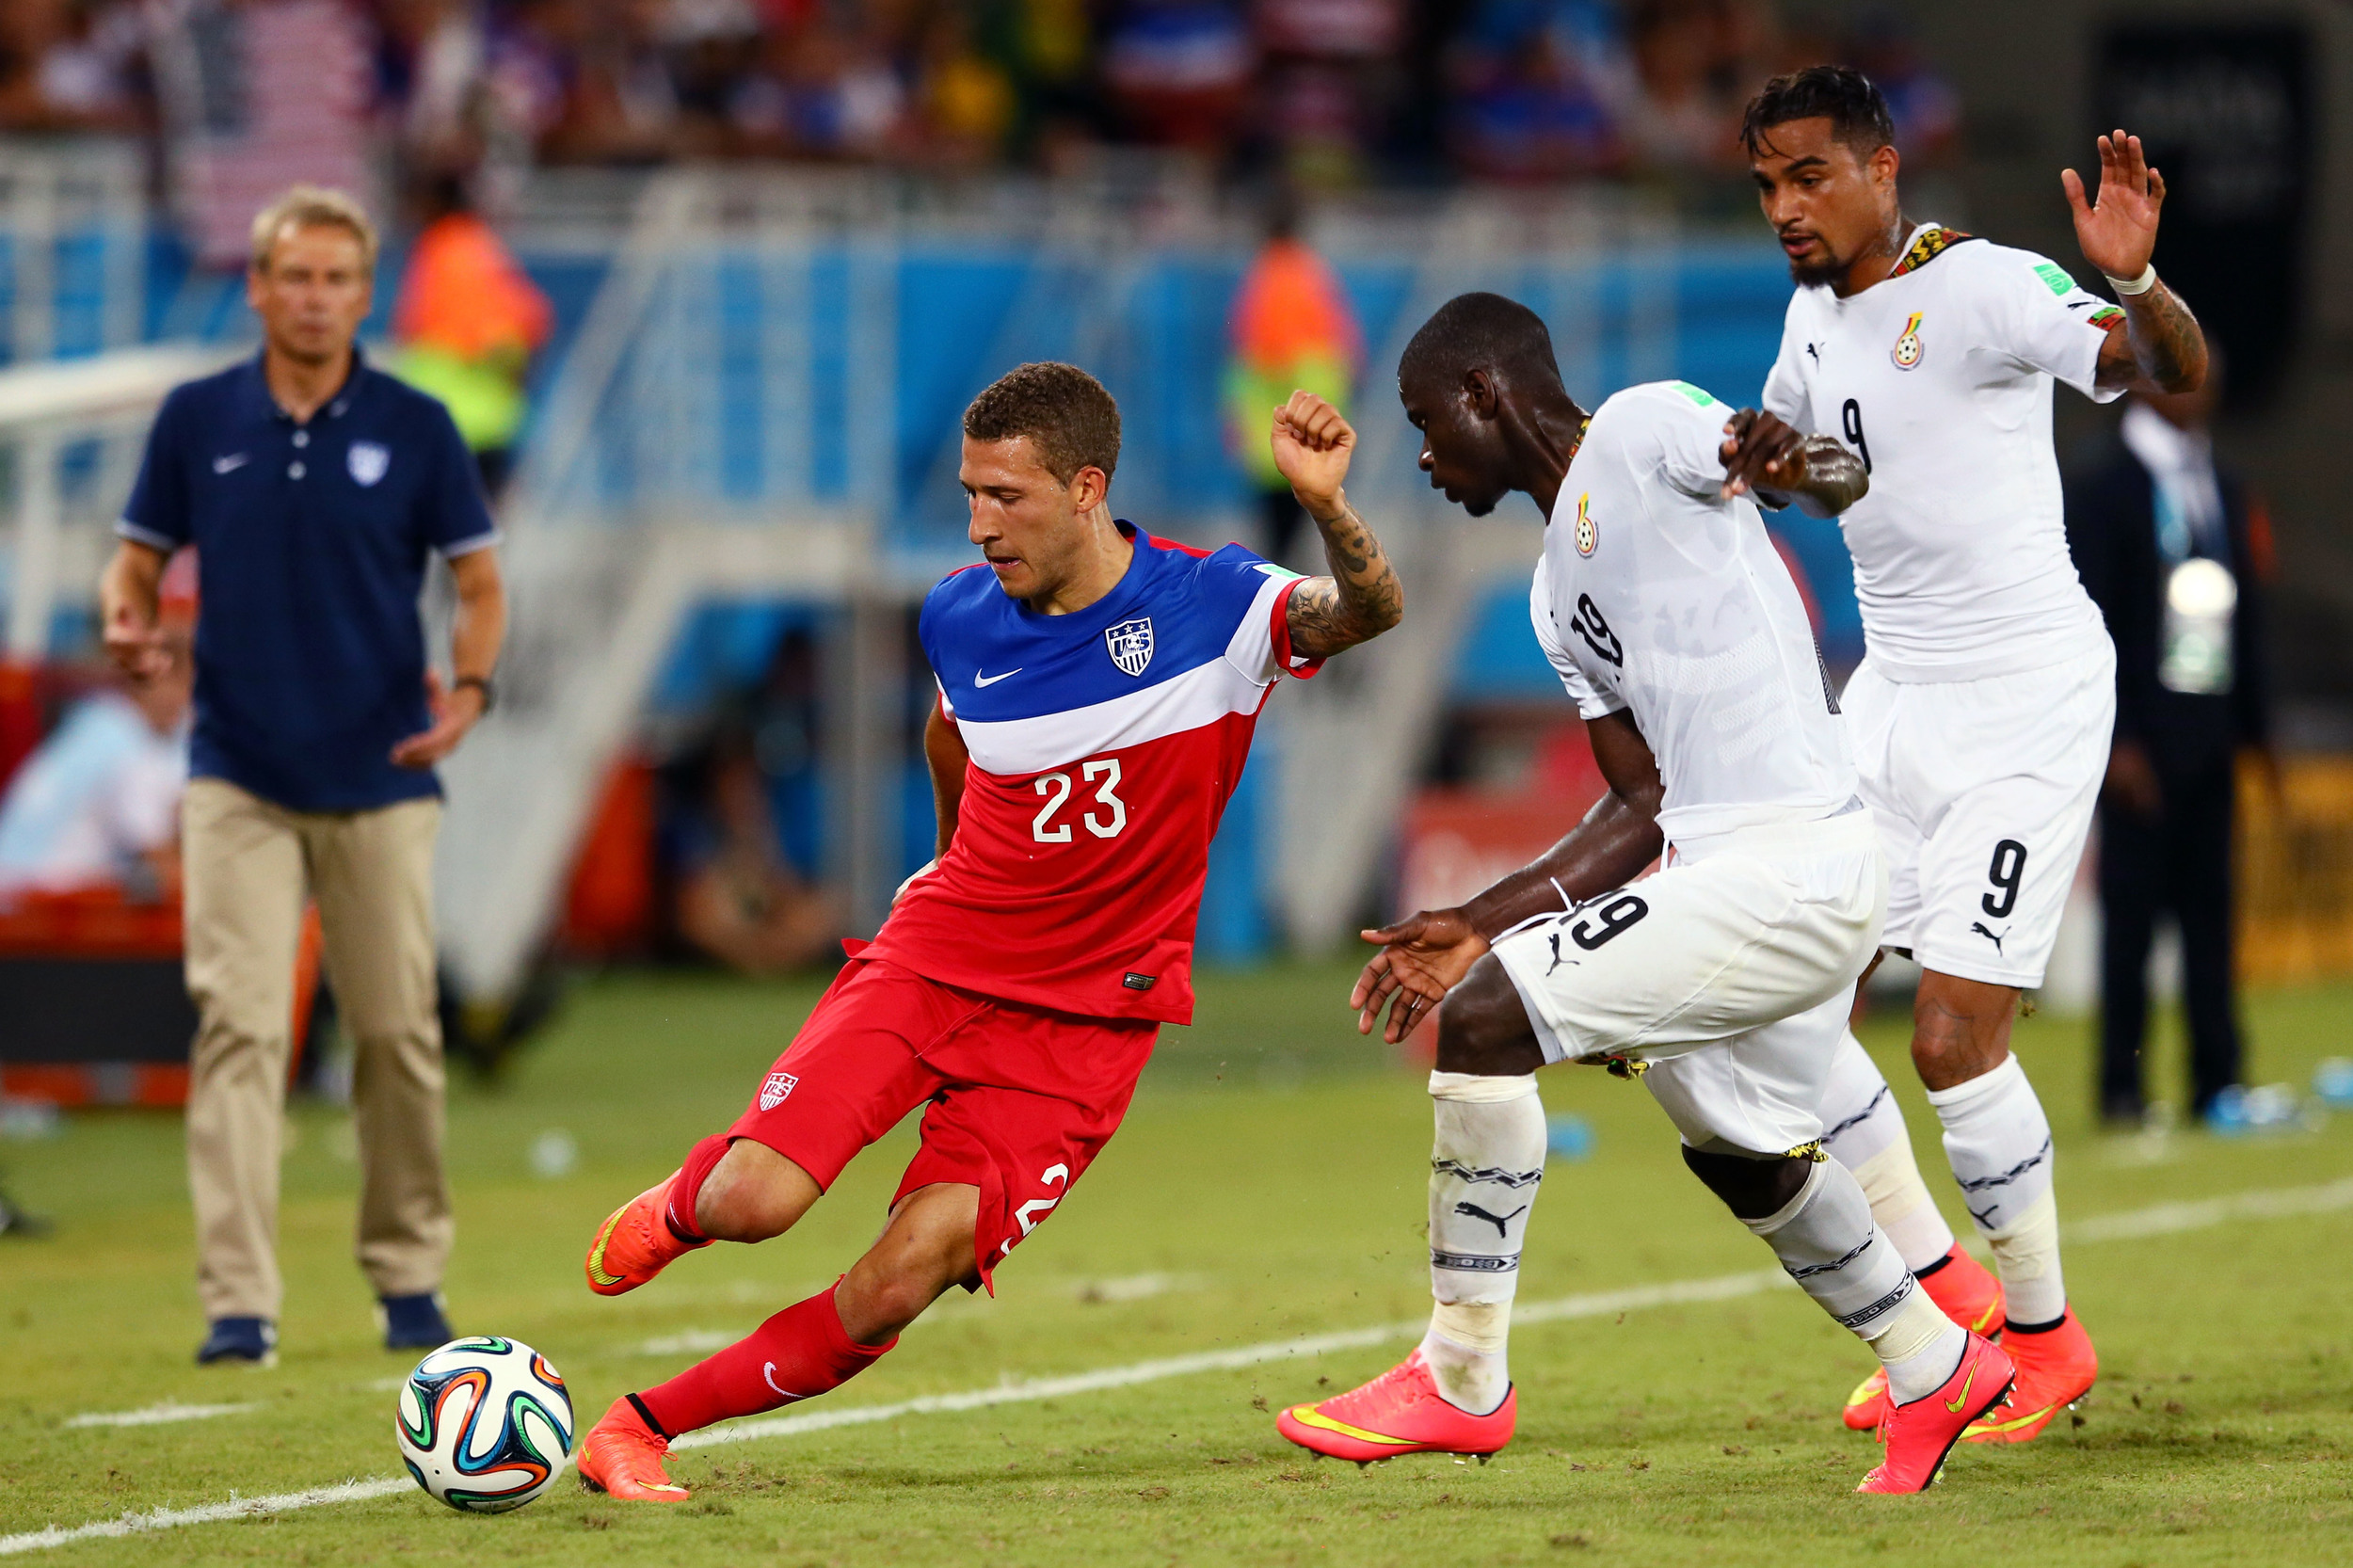 US National Soccer Team: Proof That America's Best Hope